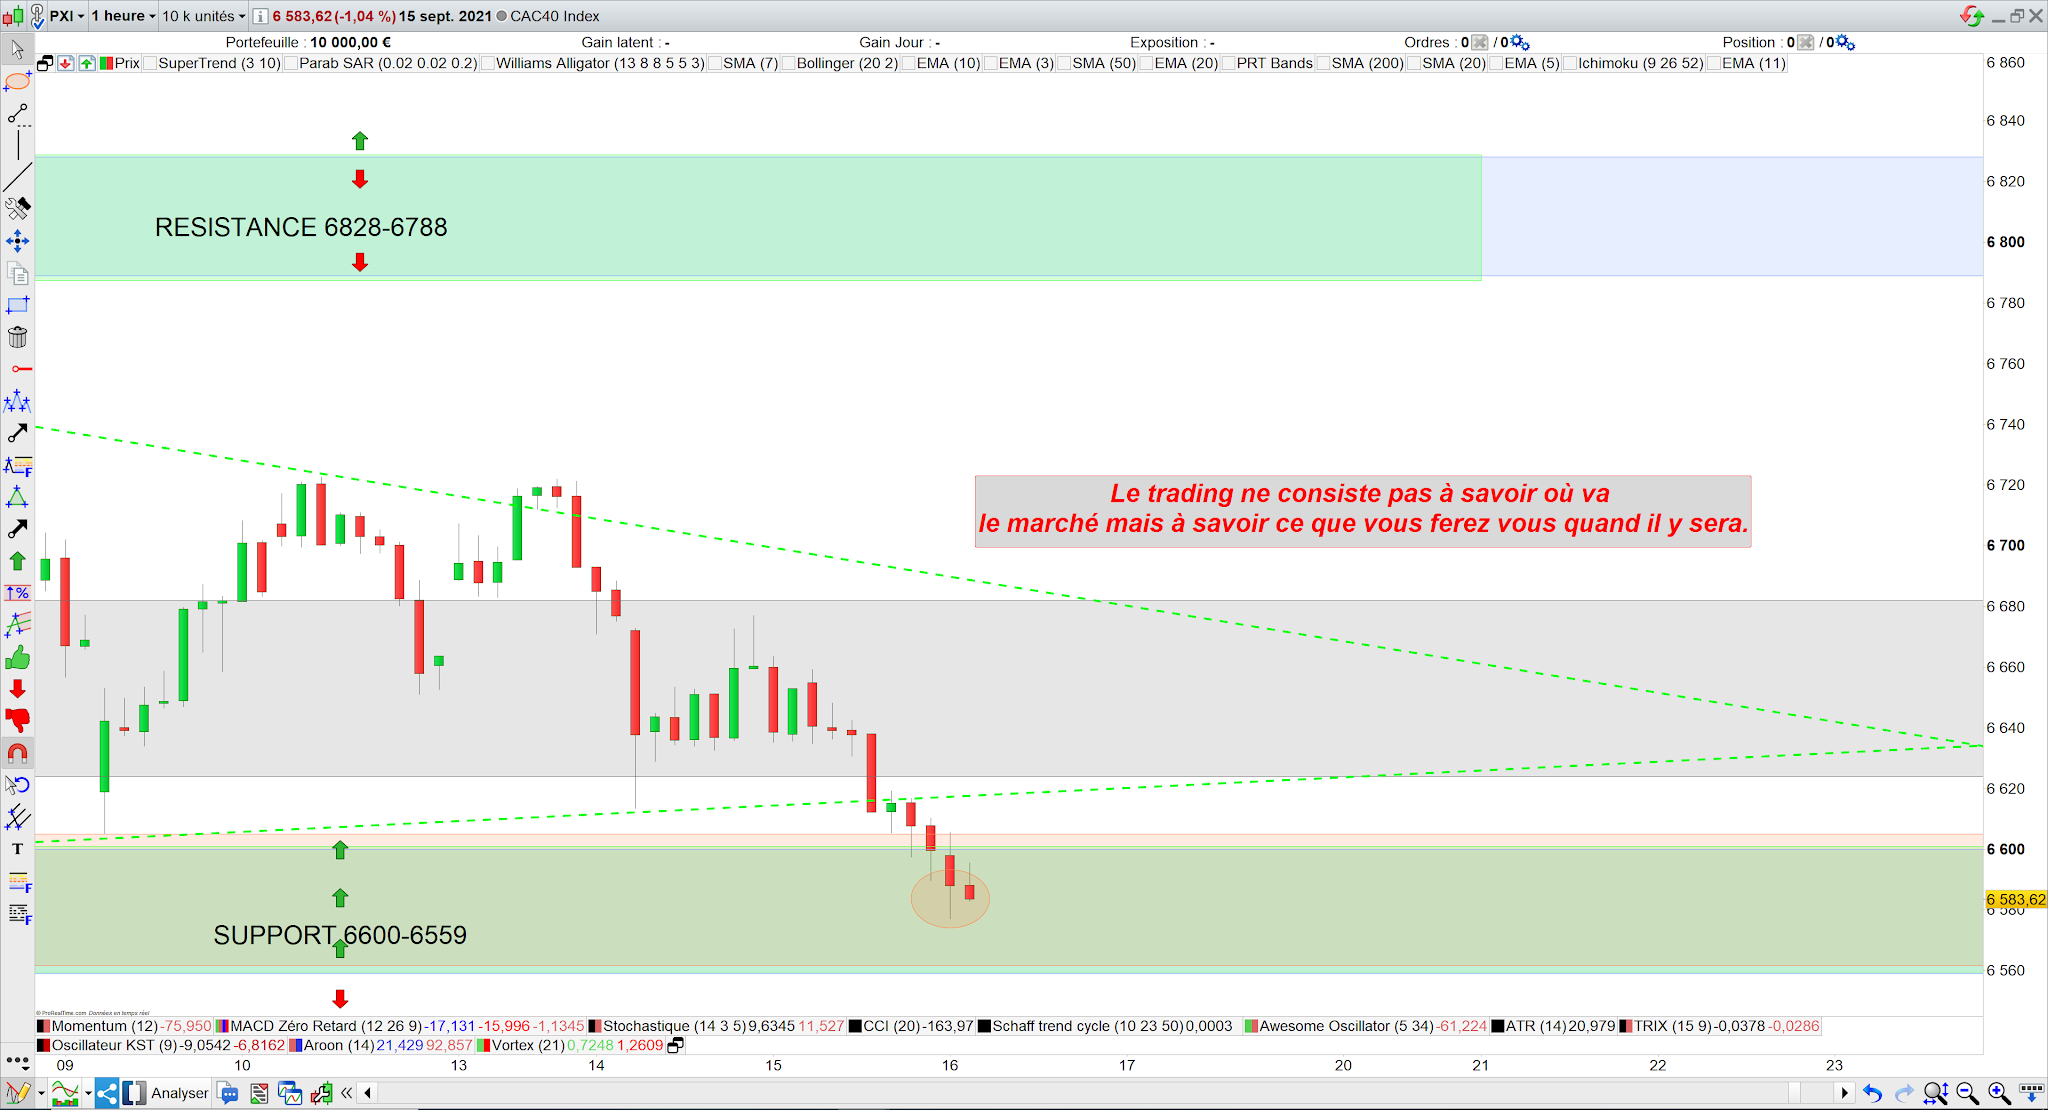 Trading cac40 16/09/21